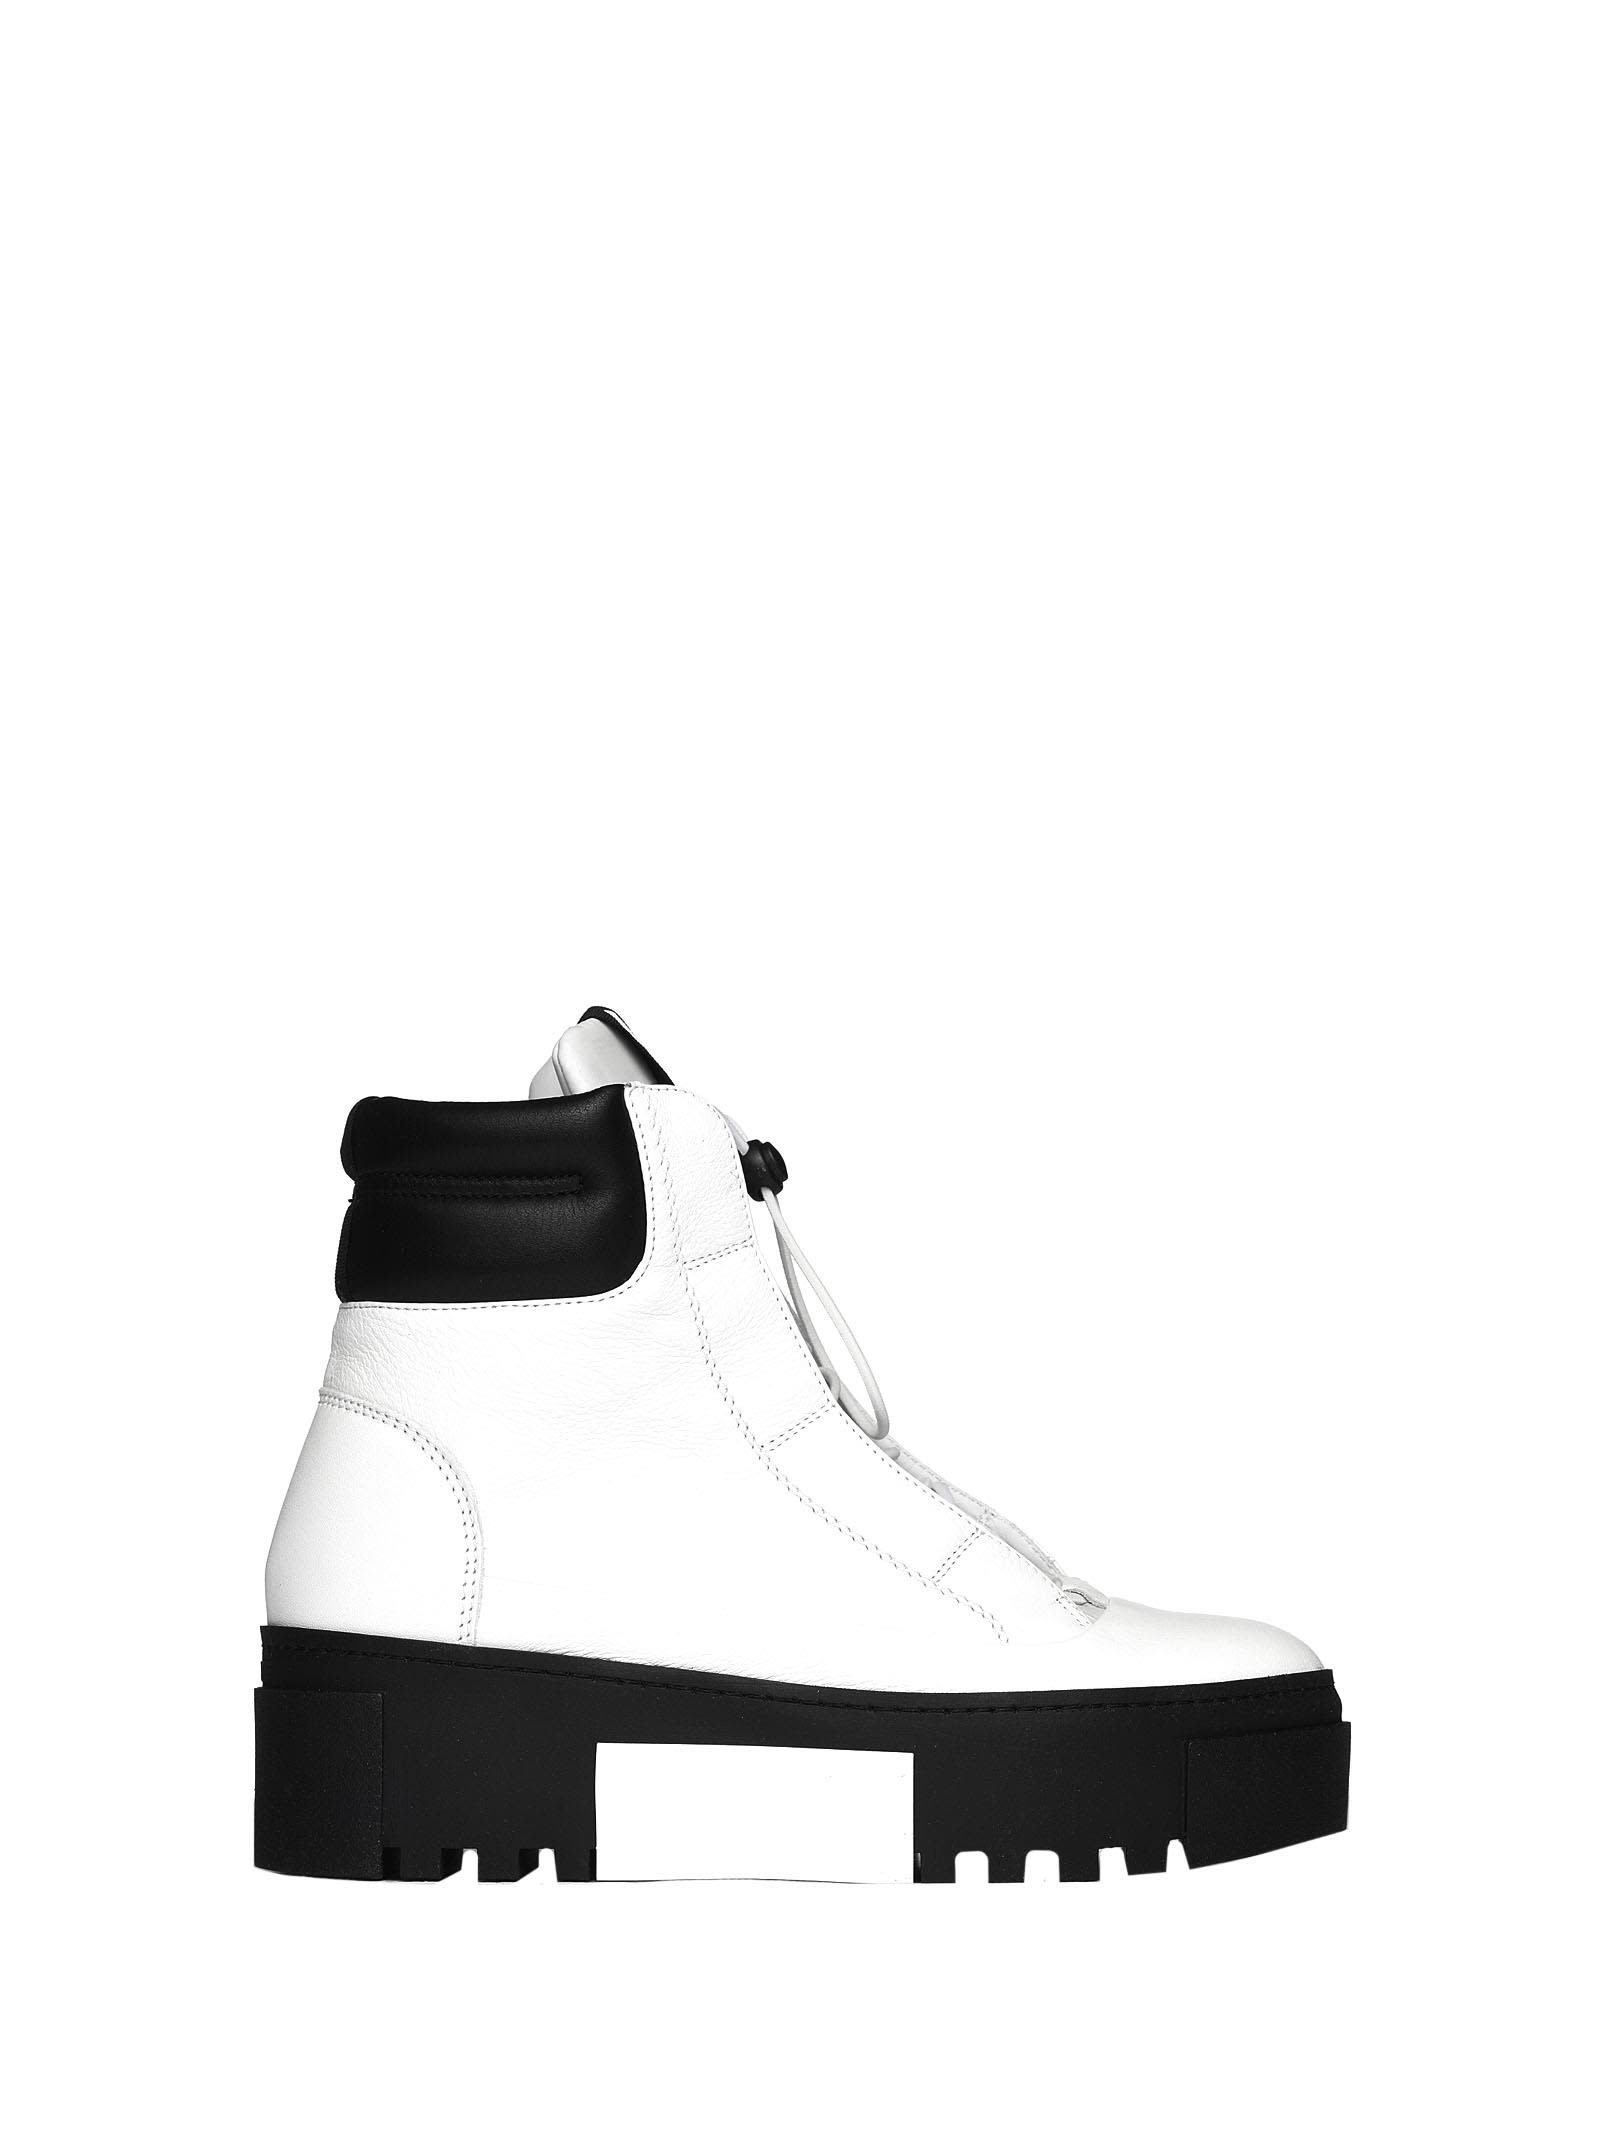 vic matié -  White And Black Hiking-style Heeled Ankle Boots